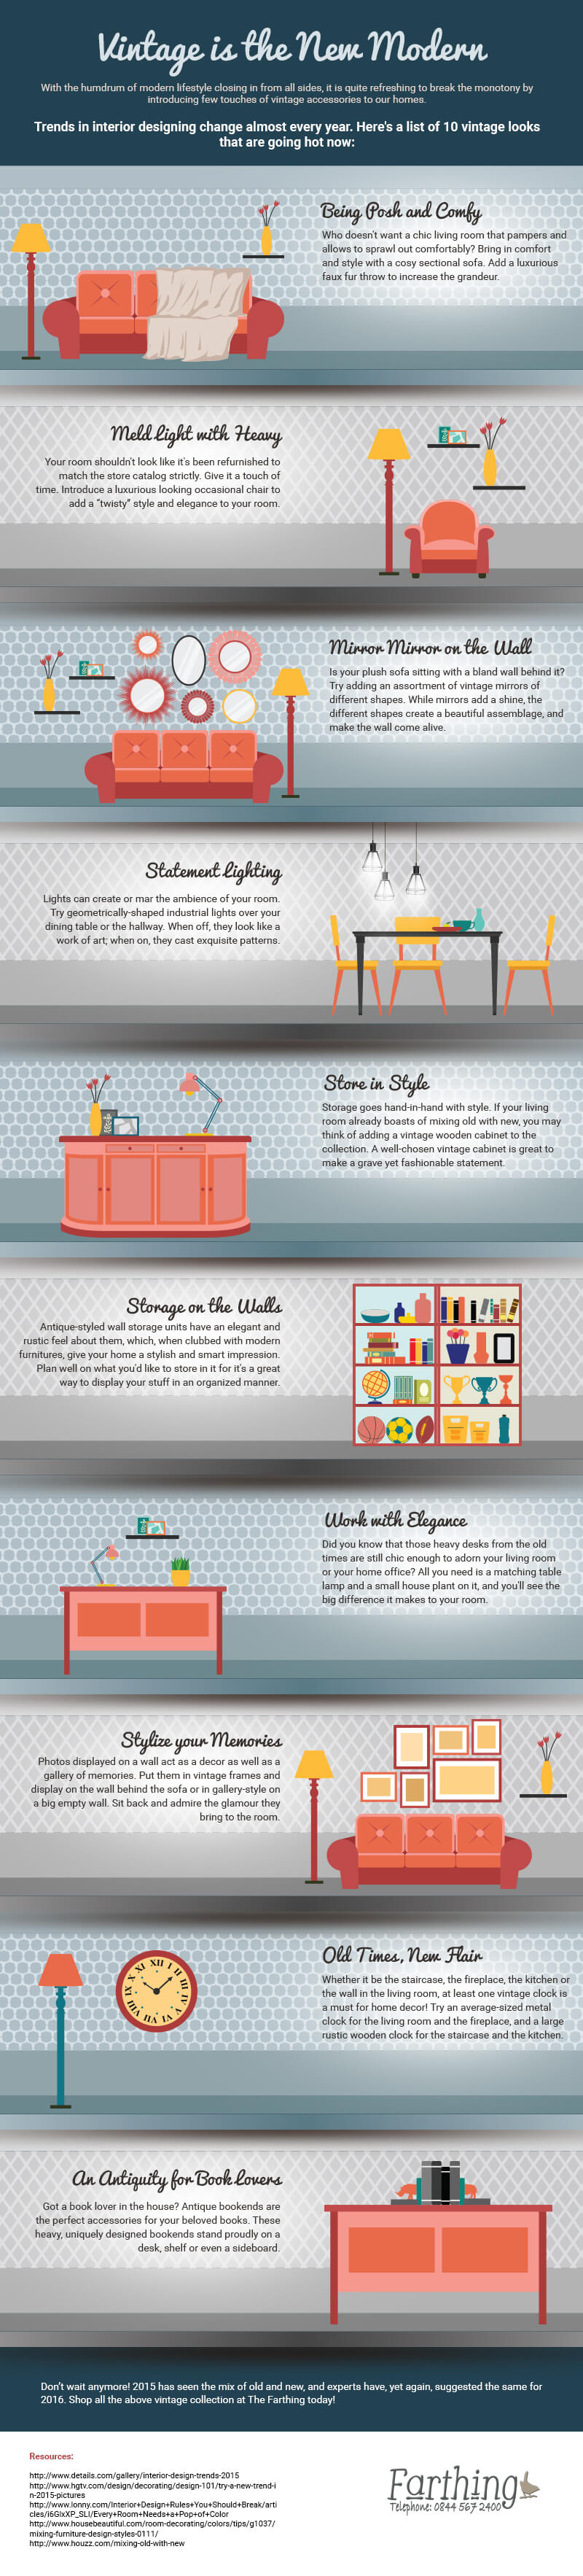 How to Decorate Your Home In Vintage Style [Infographic]